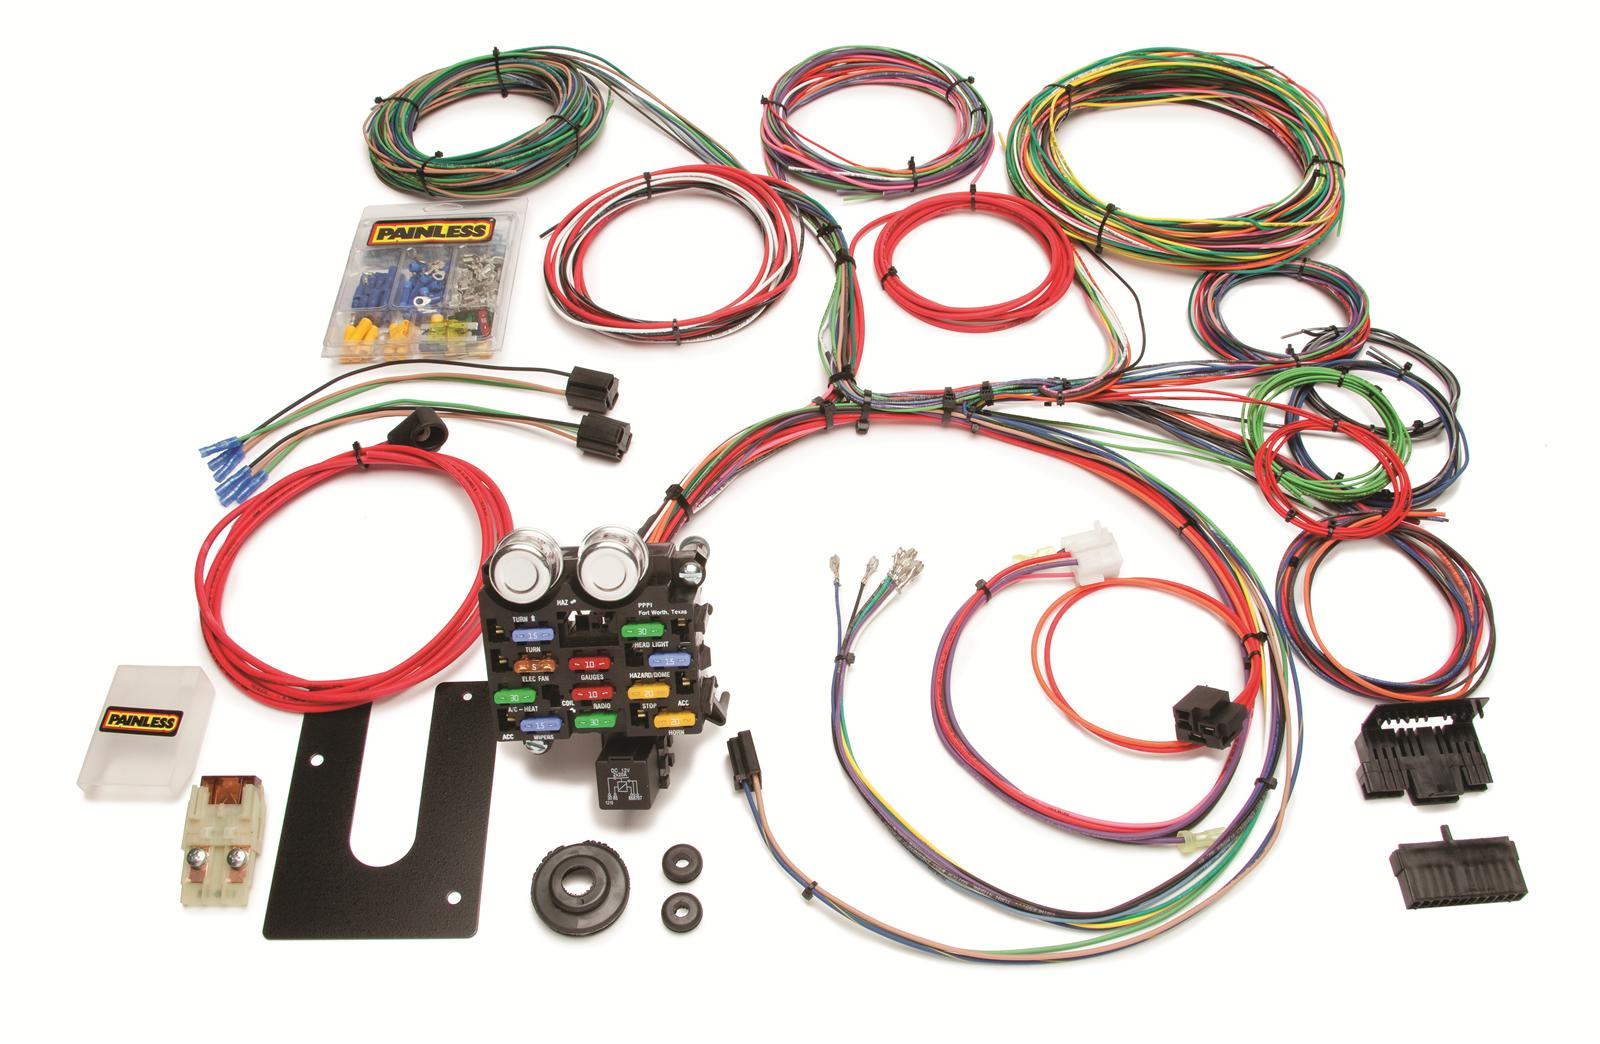 Universal Painless Wiring Harness Library Specialties Shipping Performance 21 Circuit Harnesses 10101 Free On Orders Over 49 At